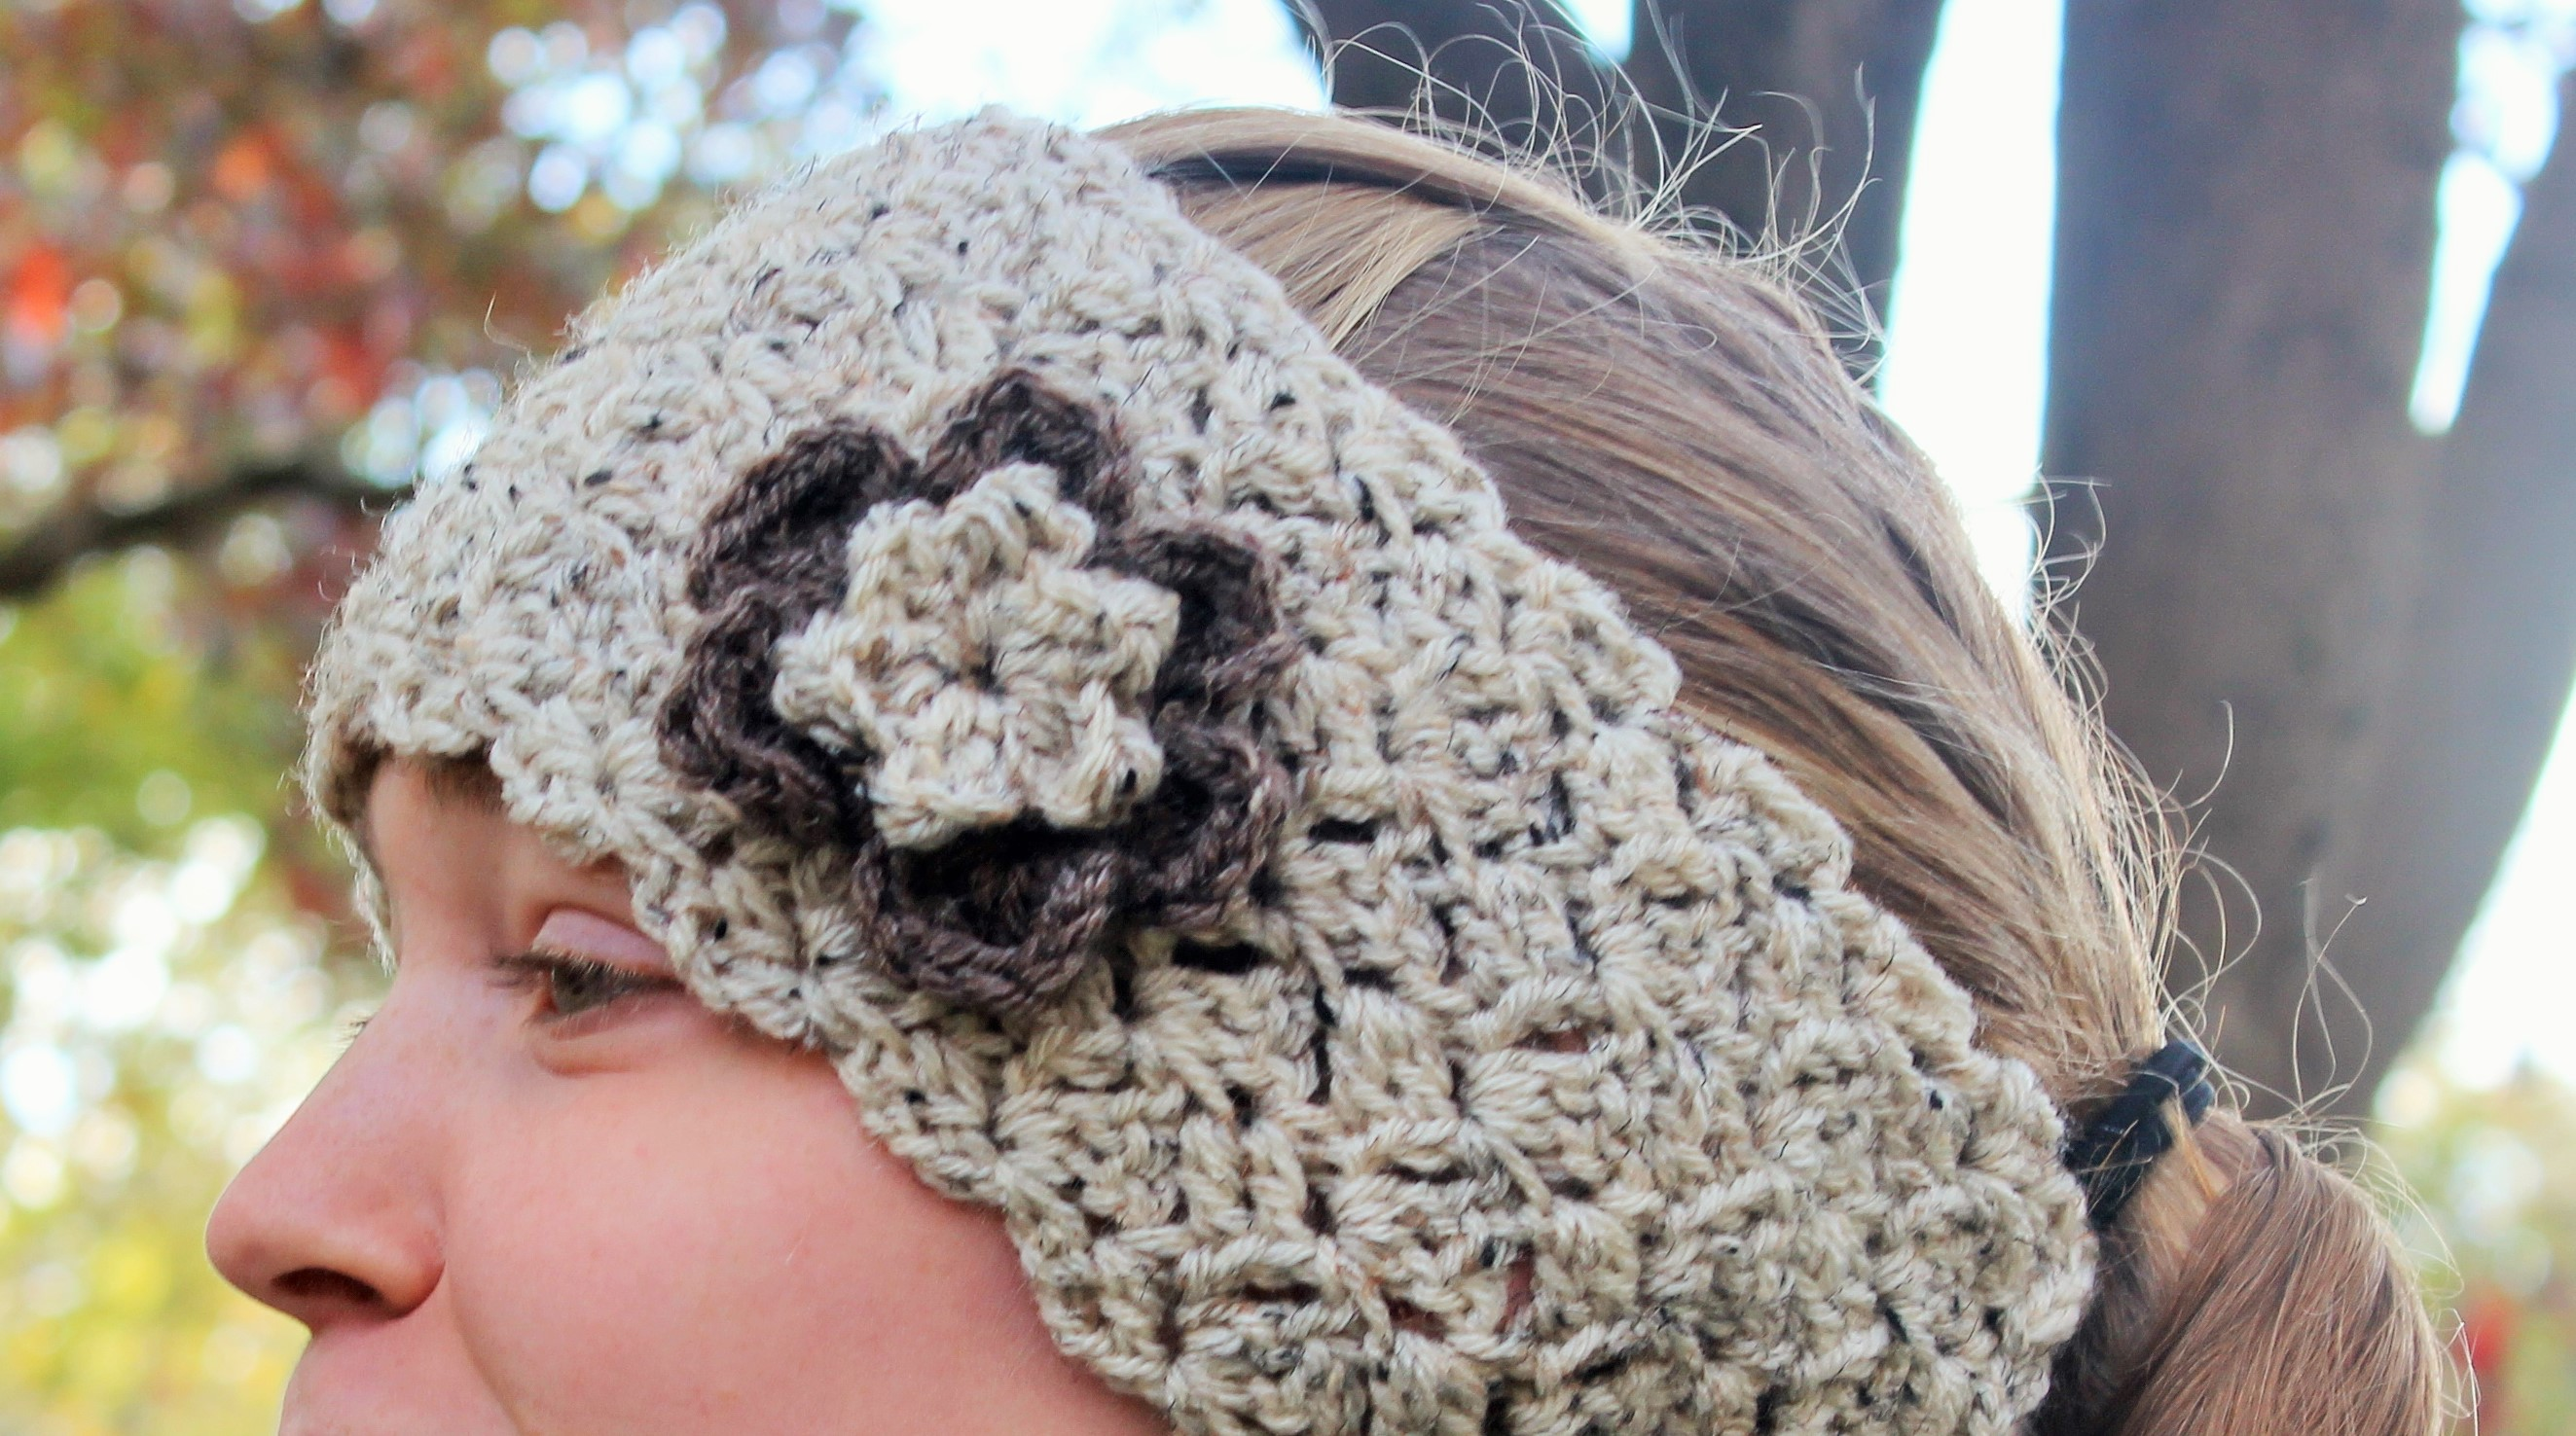 Crochet Pattern - Queens Lace Ear Warmer to fit Toddlers ...